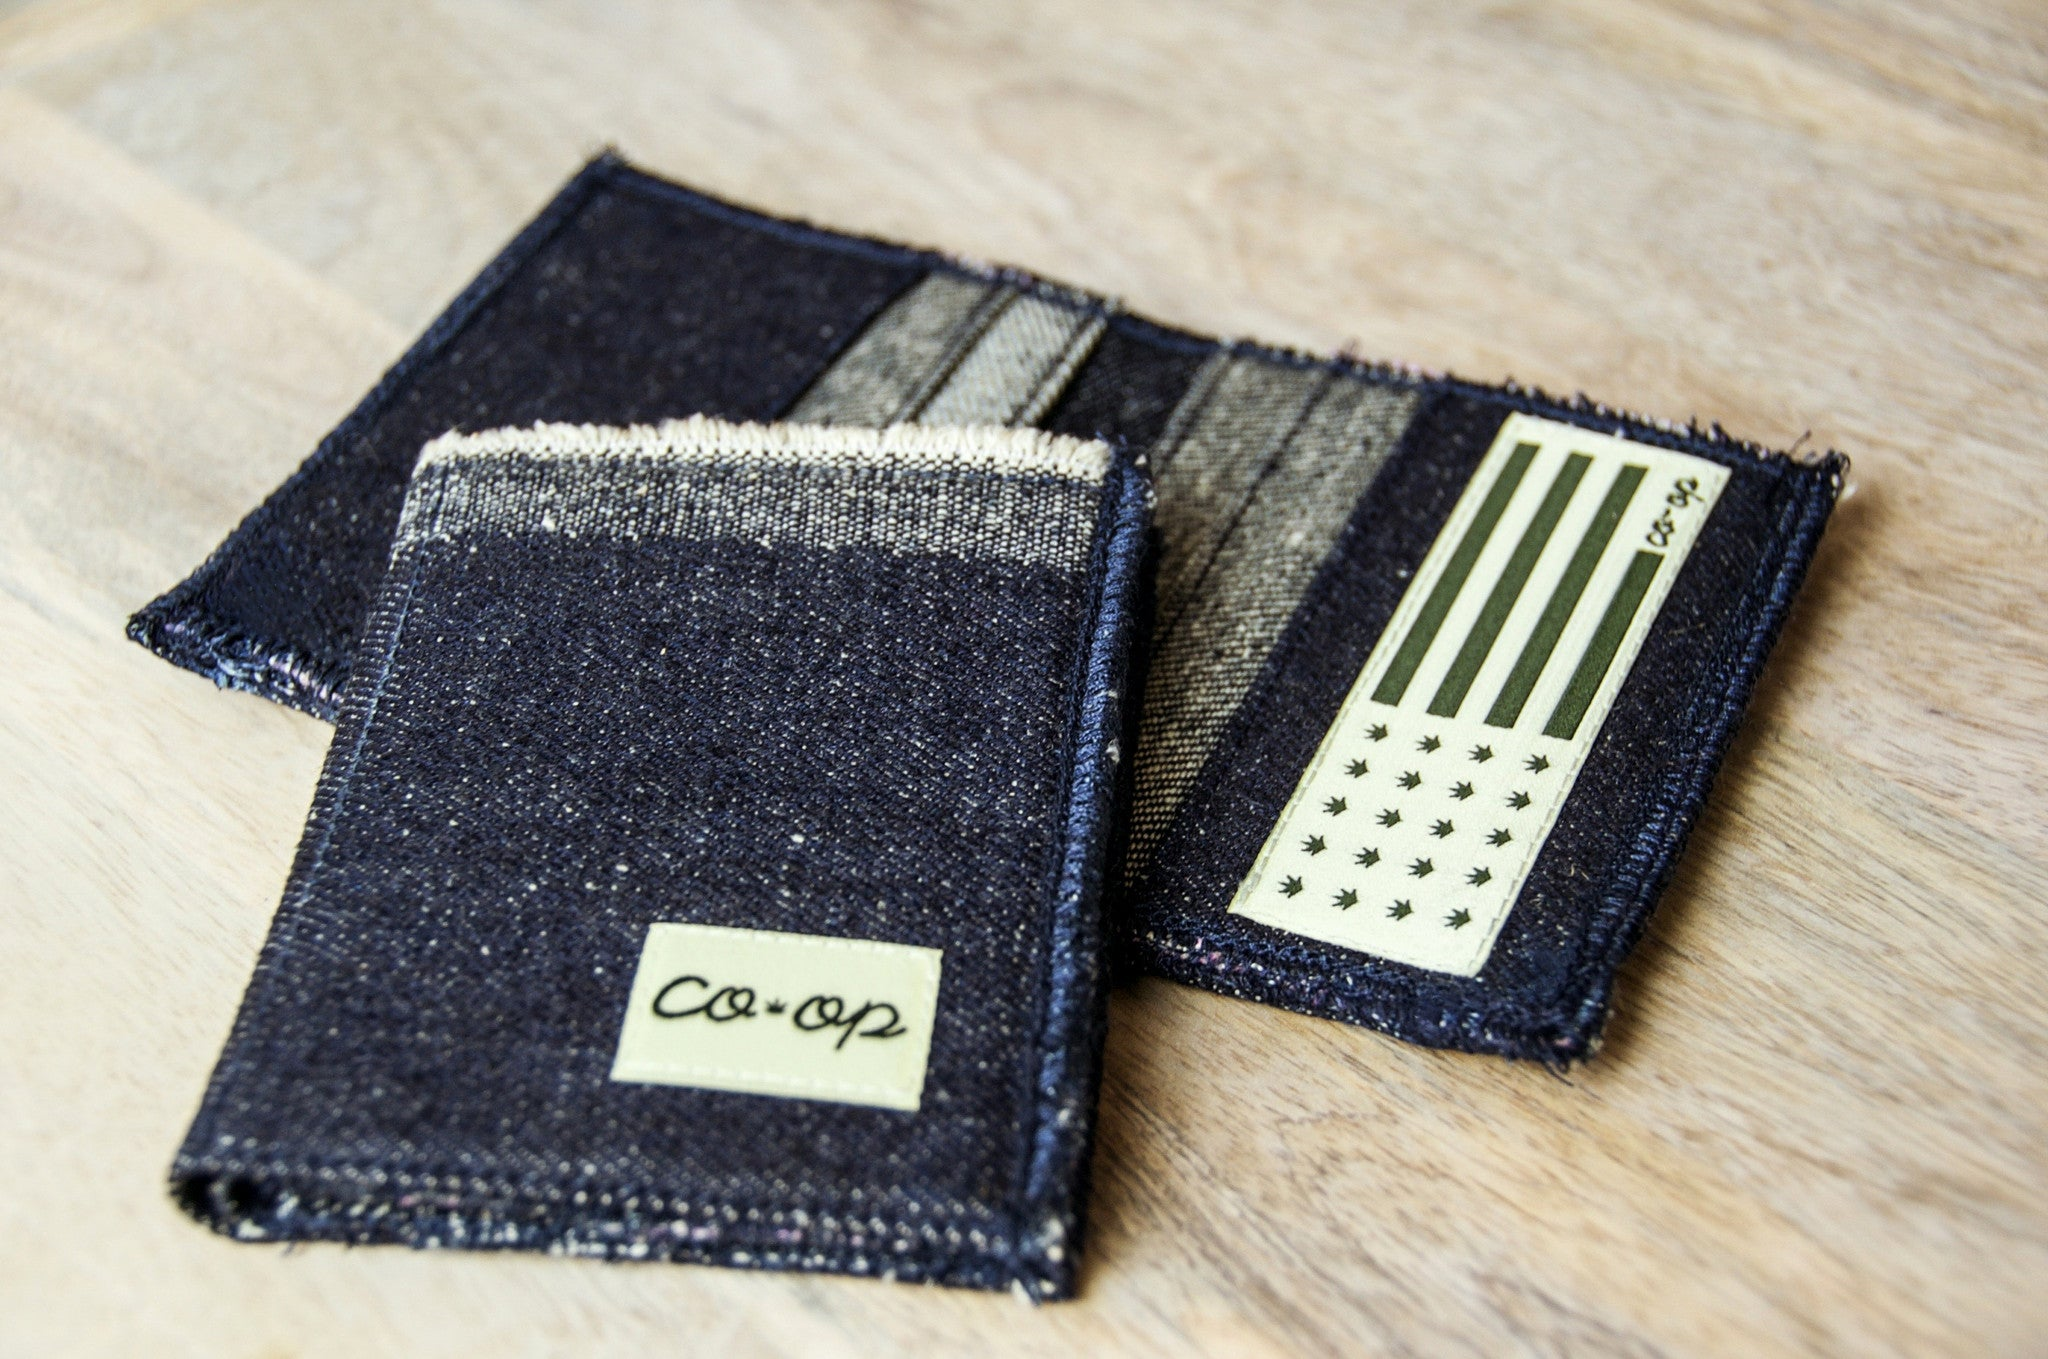 Coop Hemp Denim Hi-Bi-Fold Wallet 3.0